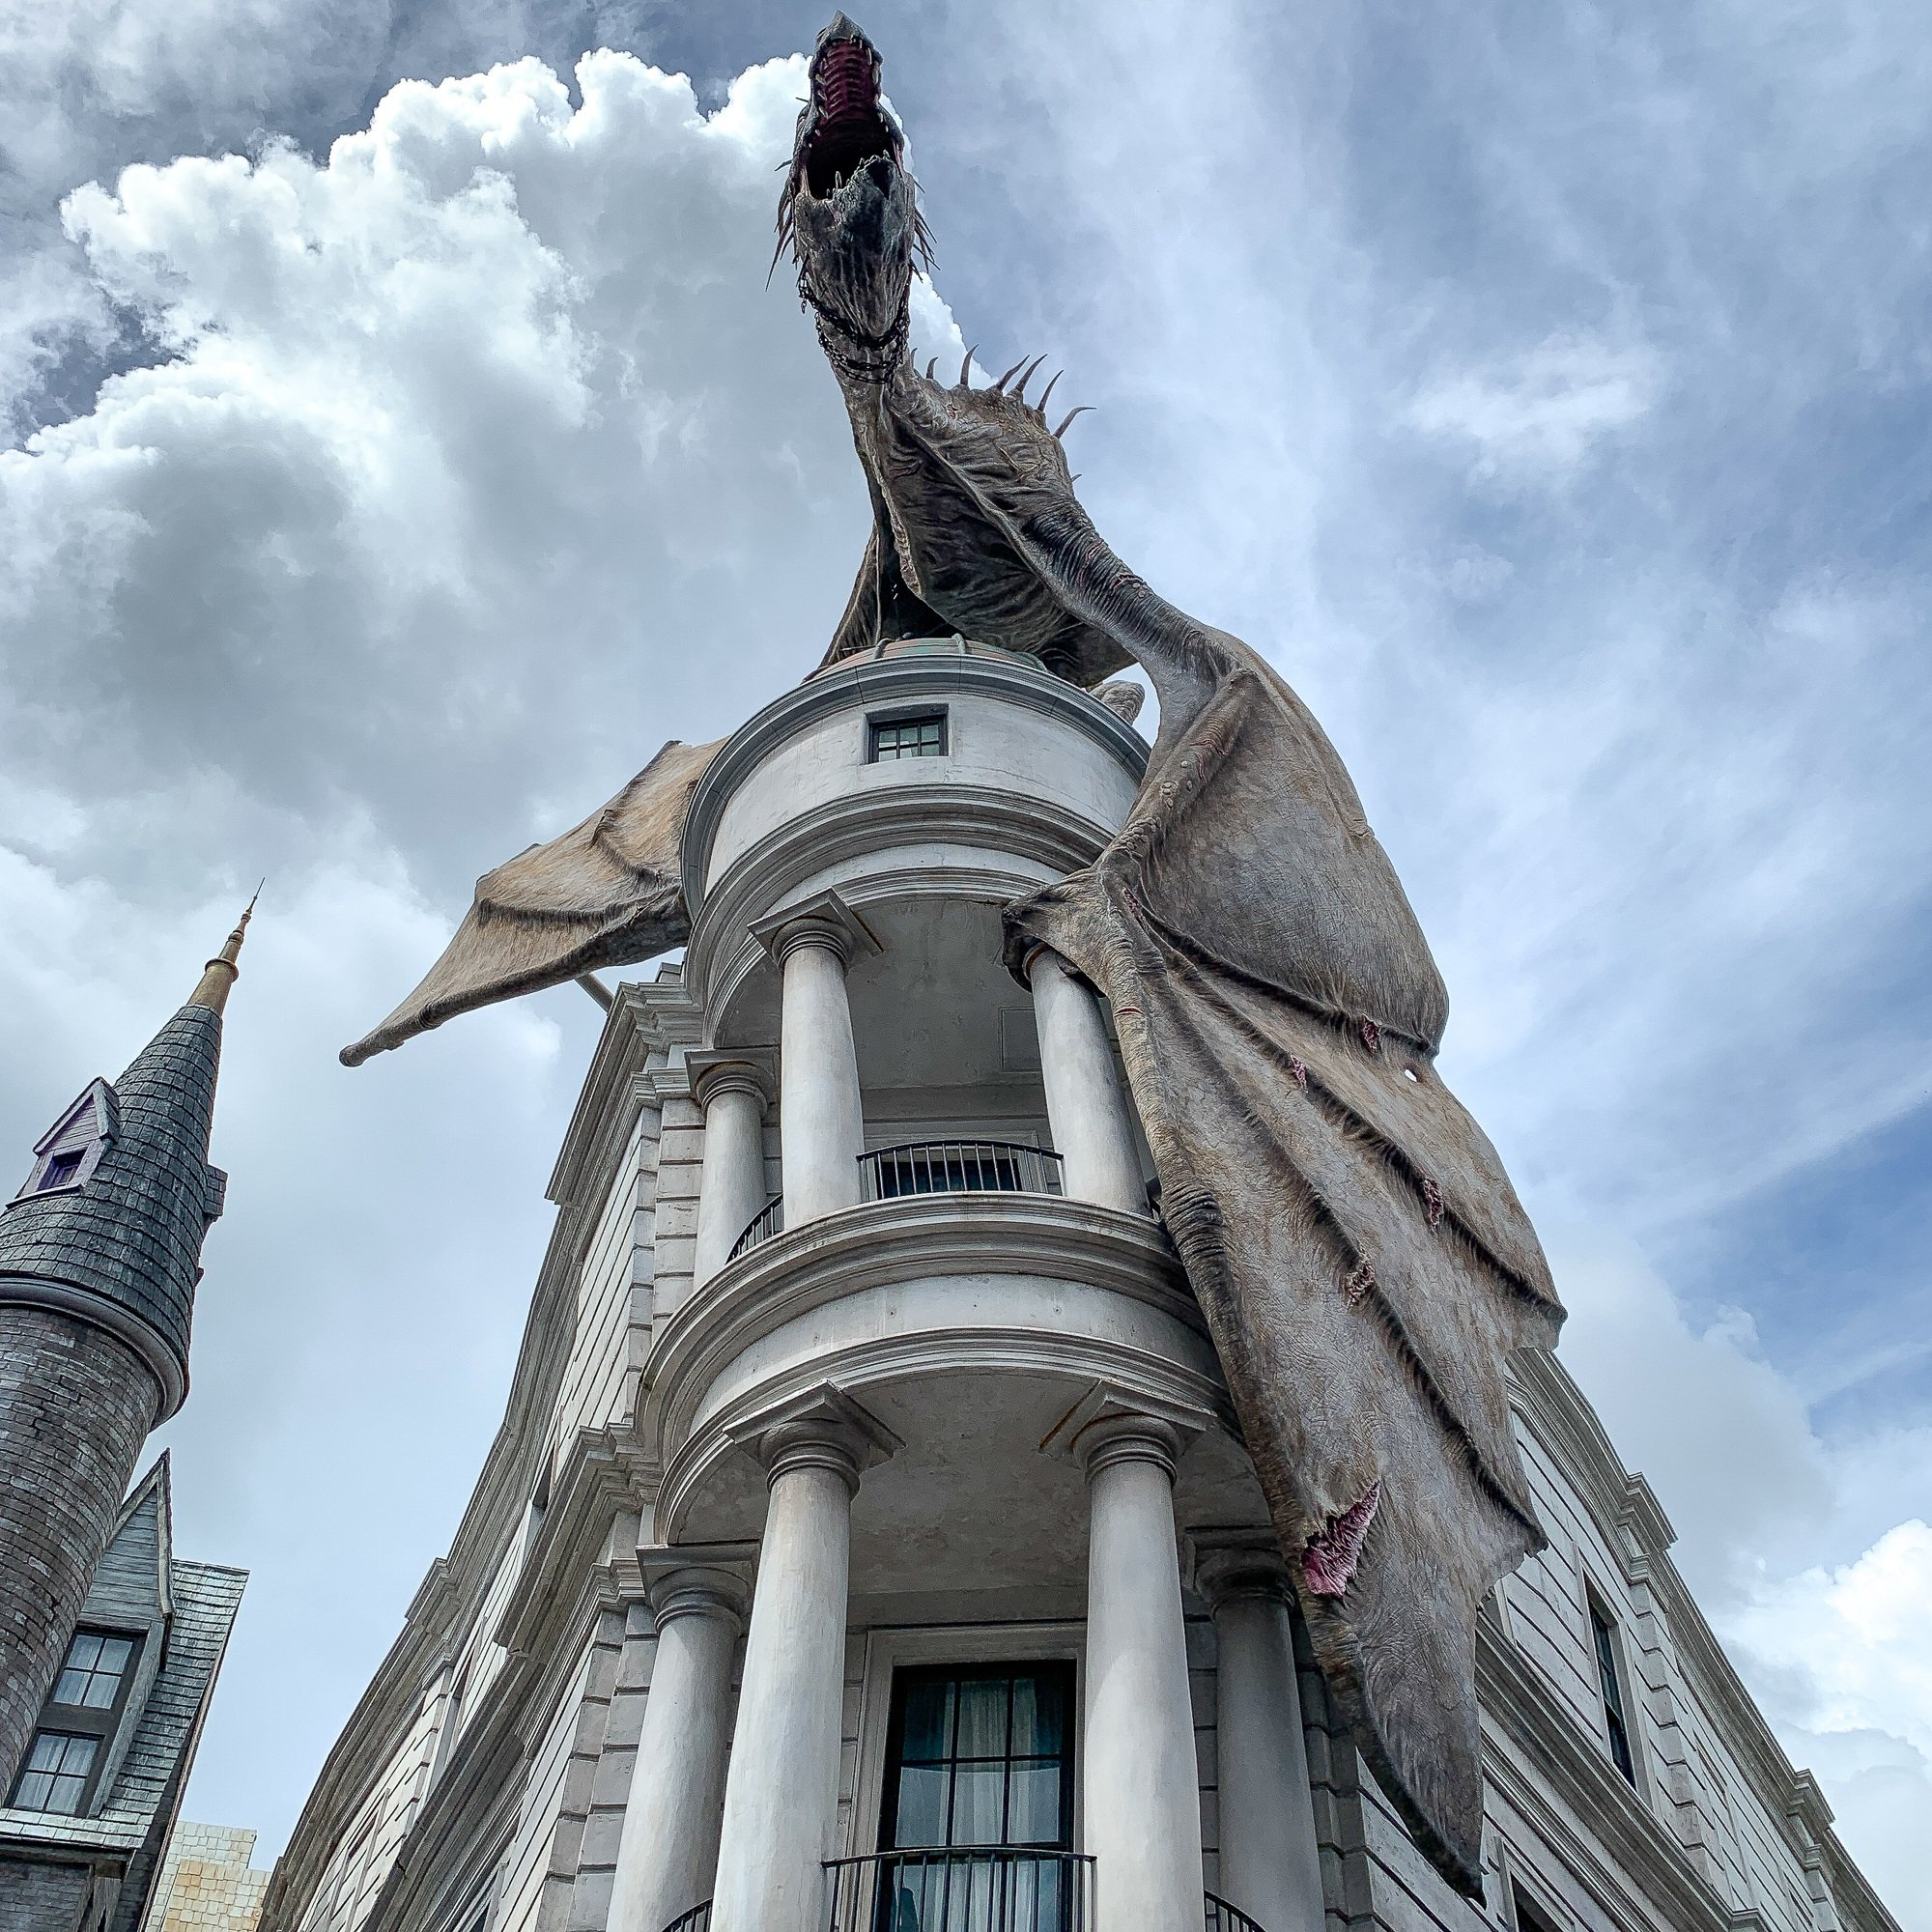 Harry Potter and the Escape from Gringotts at Universal Studios